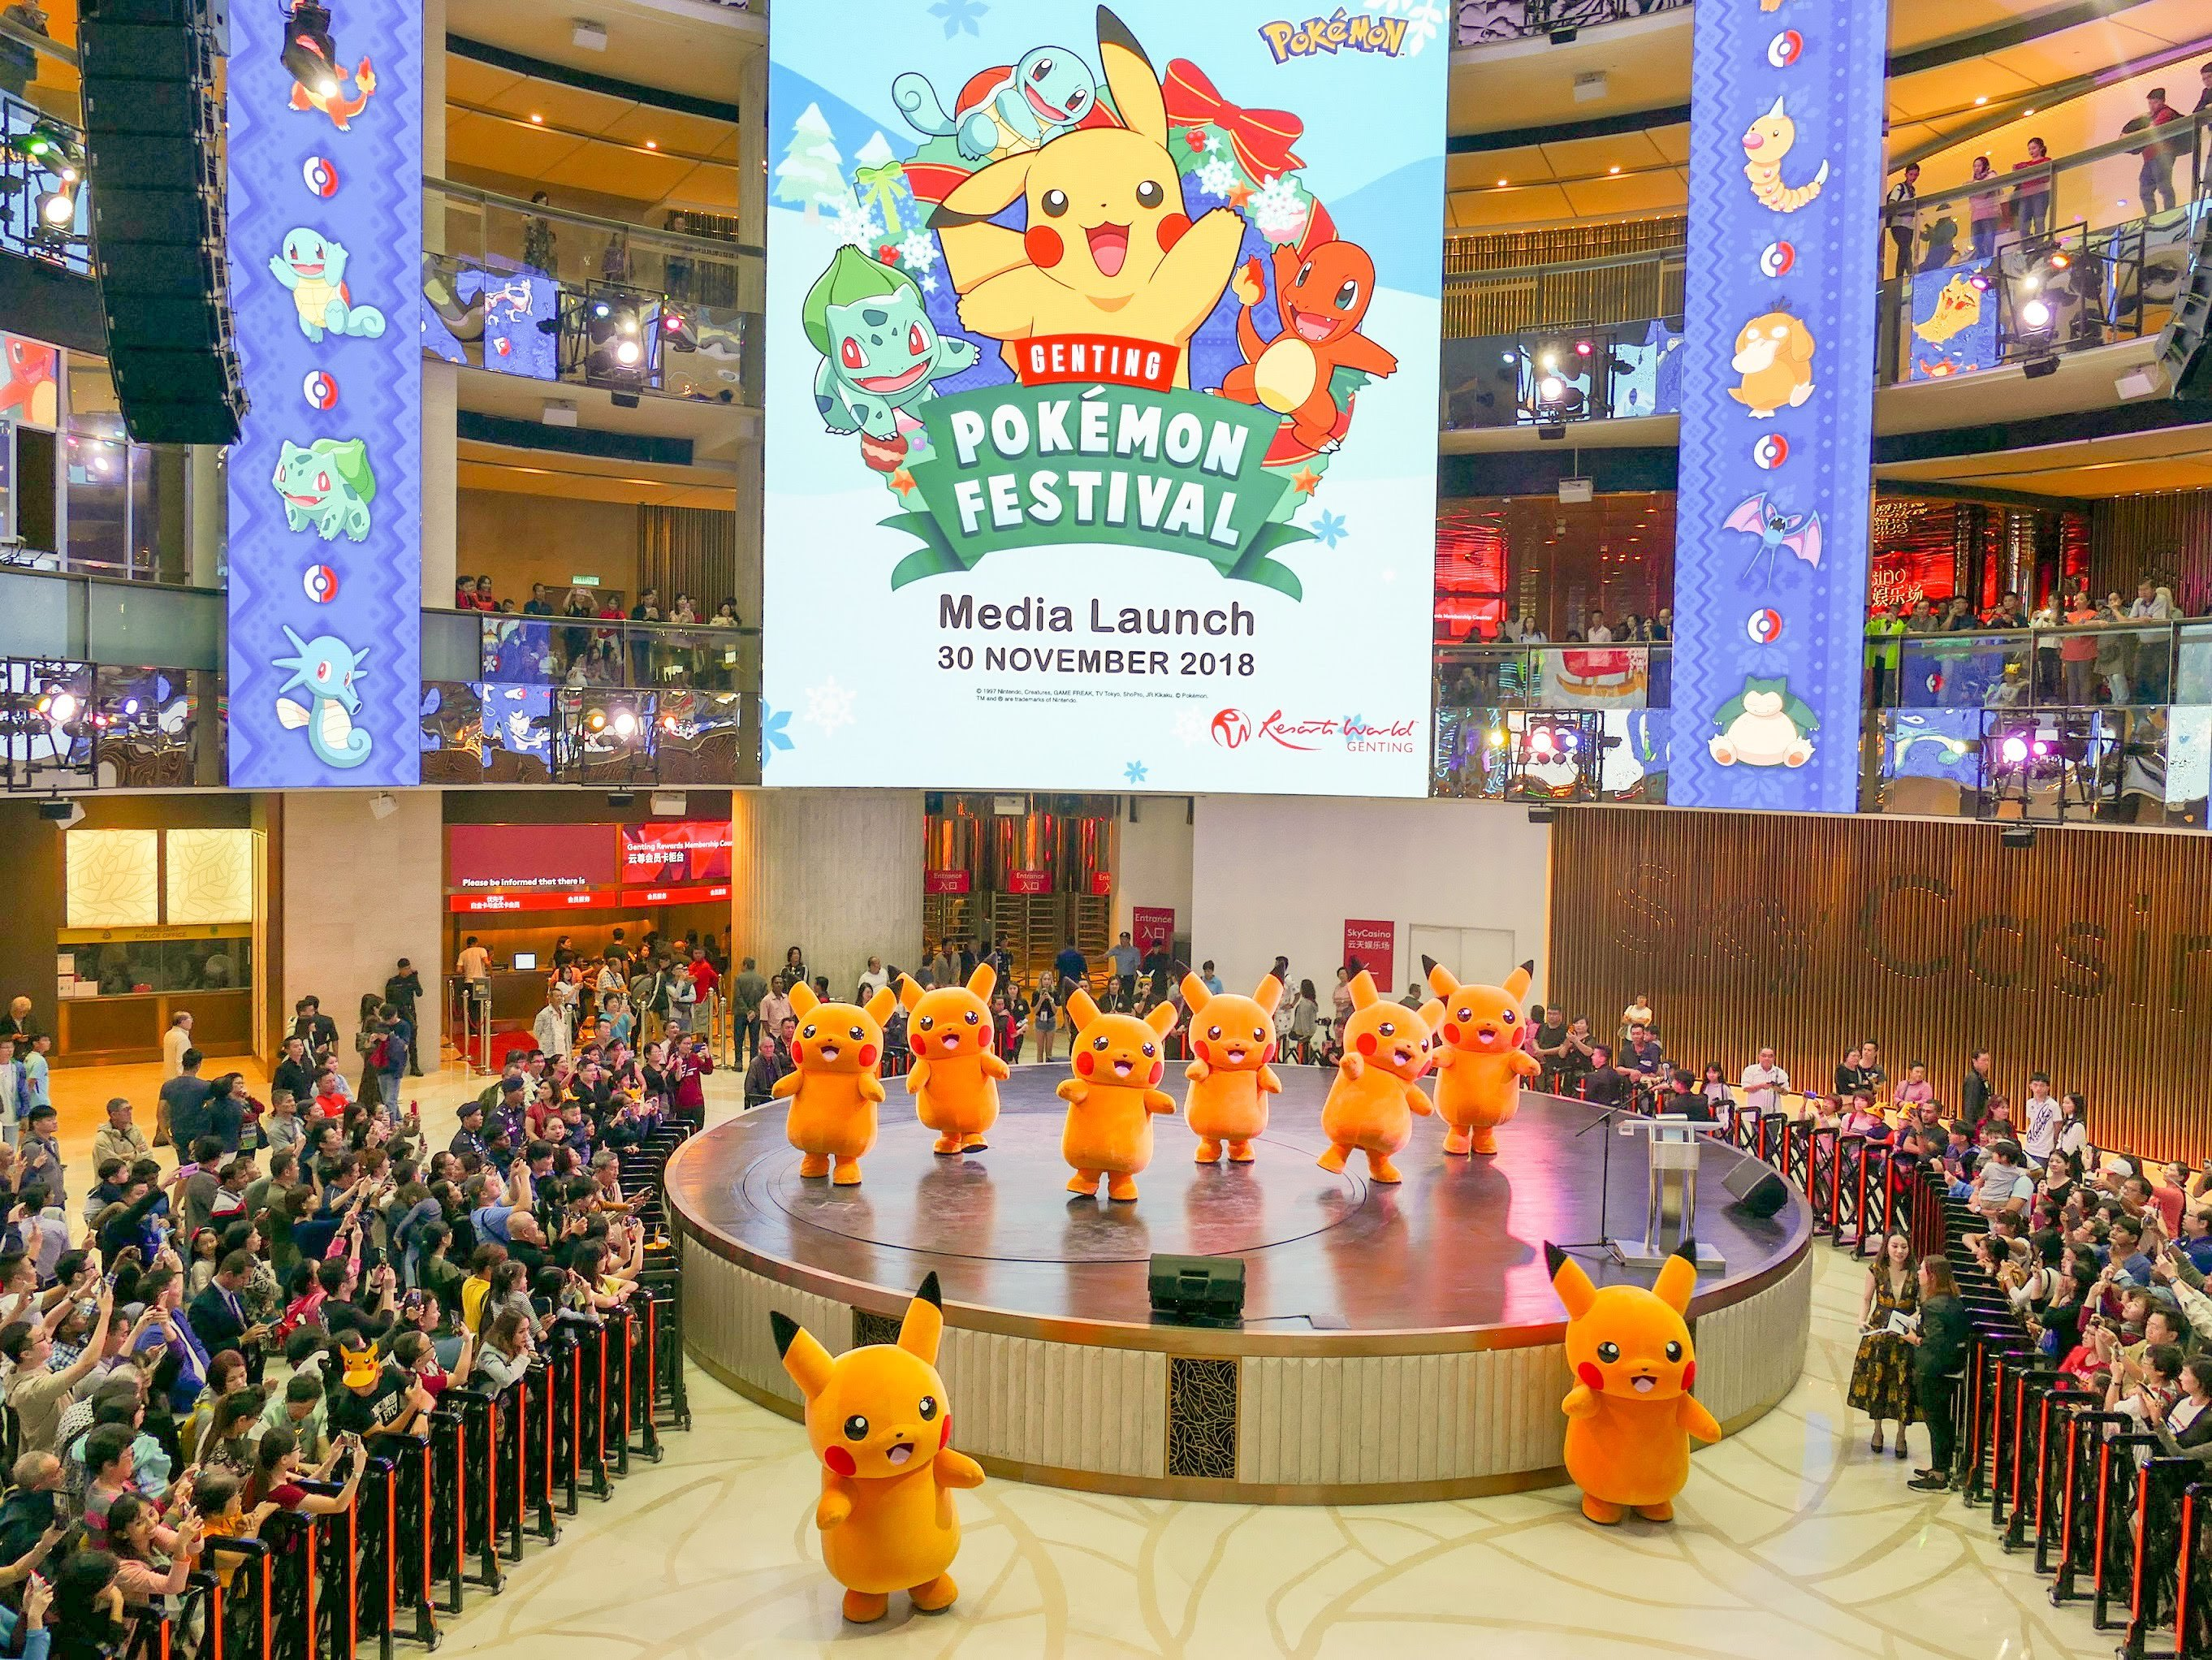 Pokemon fever hits Resorts World Genting at Malaysia's First Ever Pokemon Festival